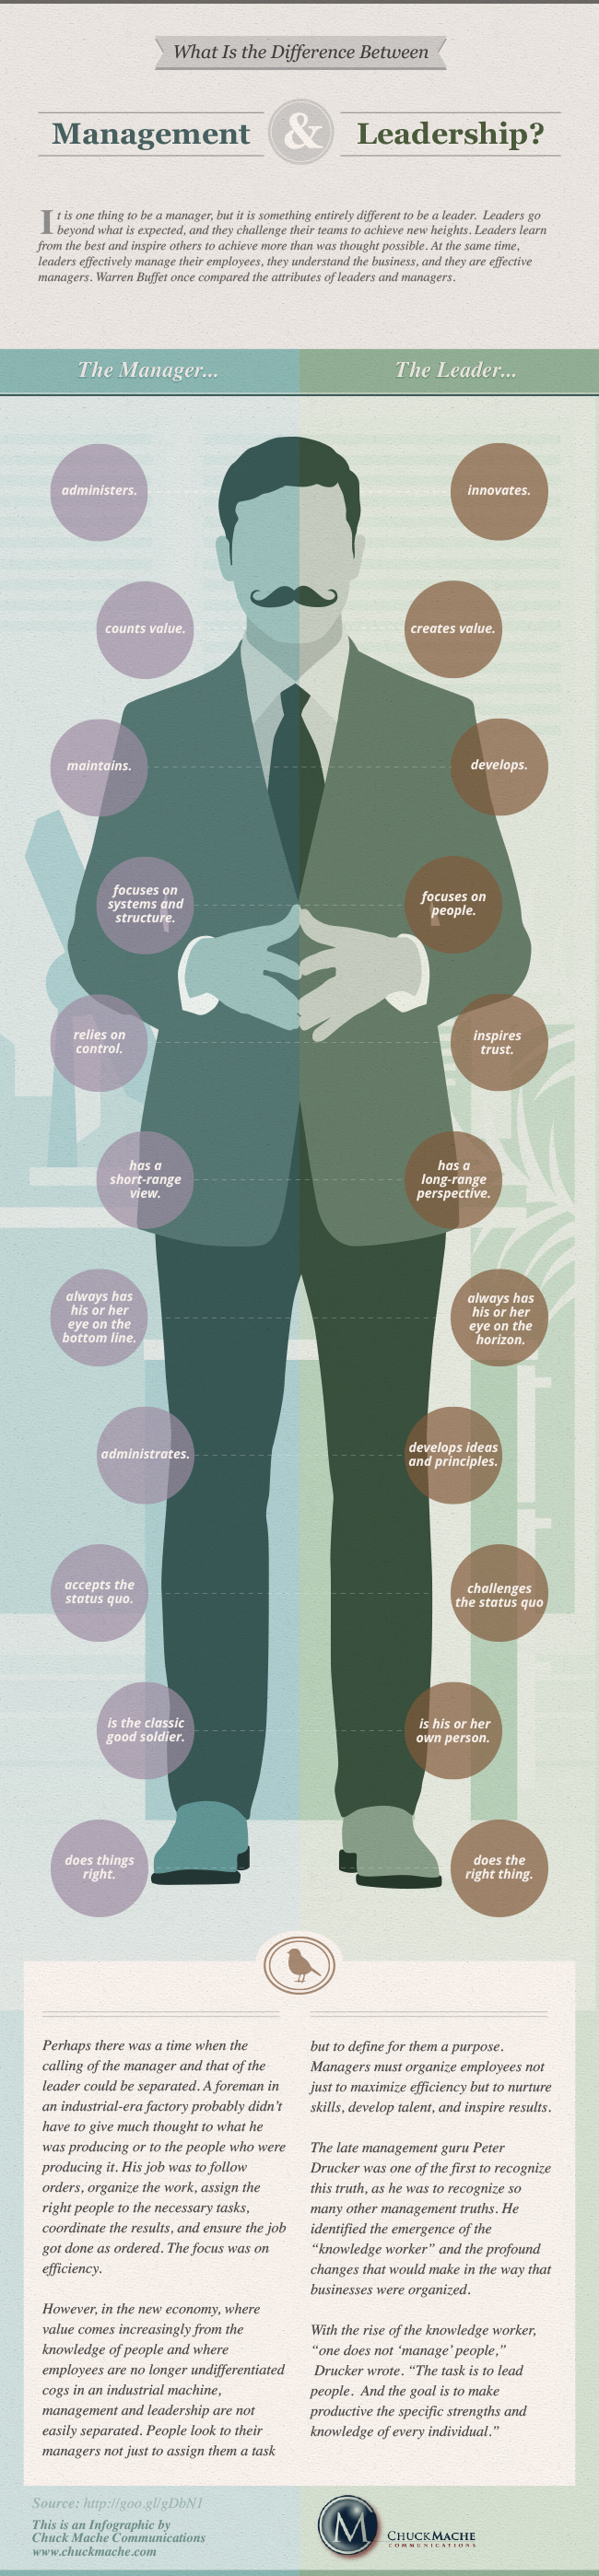 the myth about leadership vs management blog xoombi com this infographic neatly illustrates the difference between management and leadership